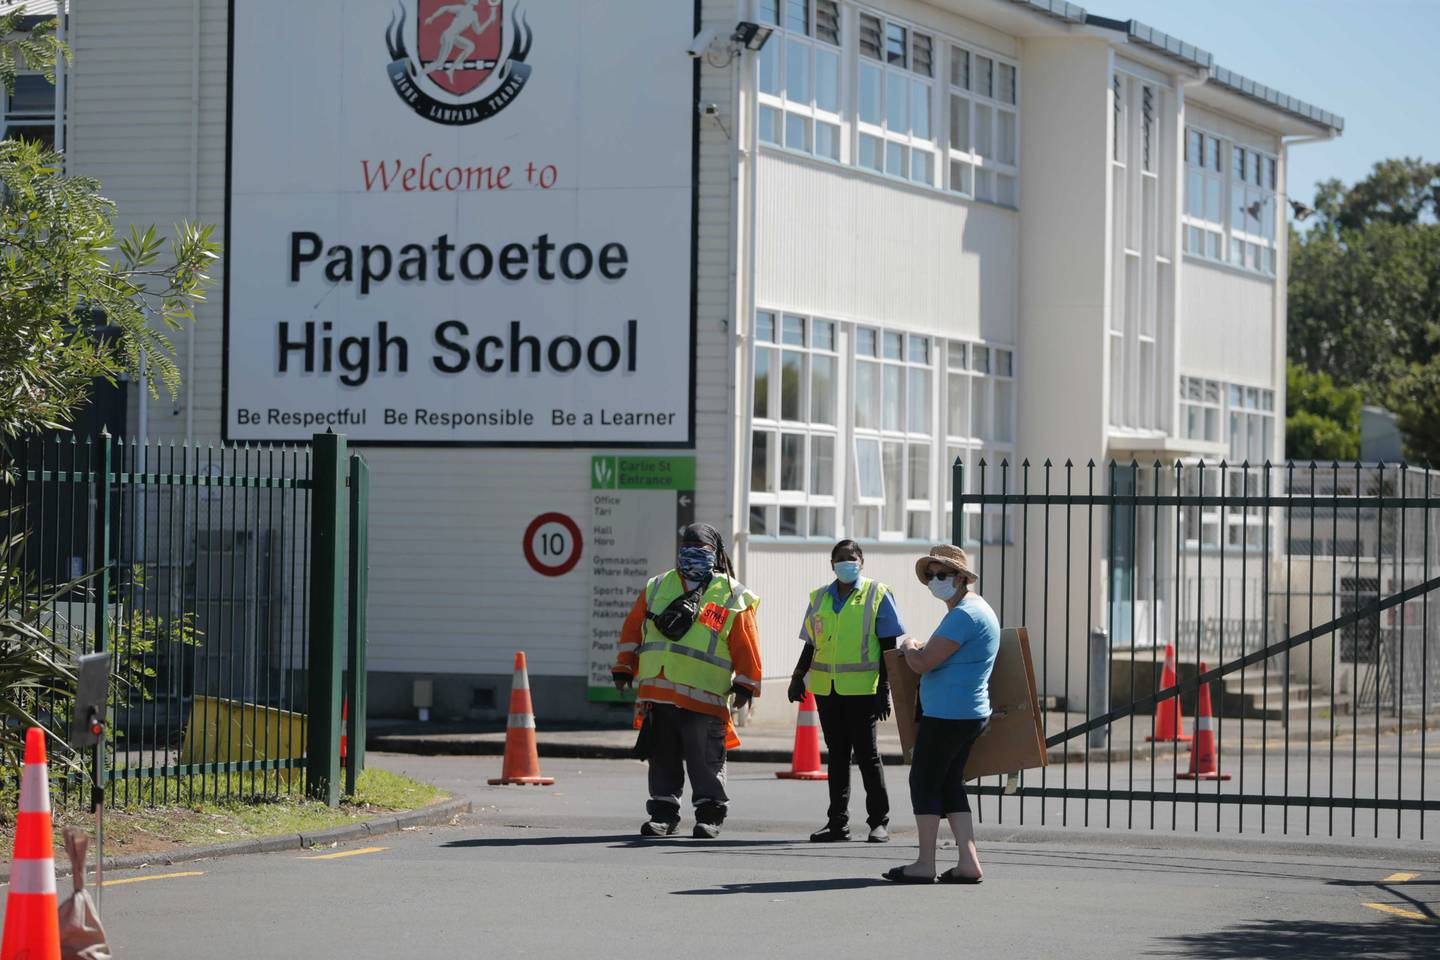 Papatoetoe High School. Photo: NZ Herald